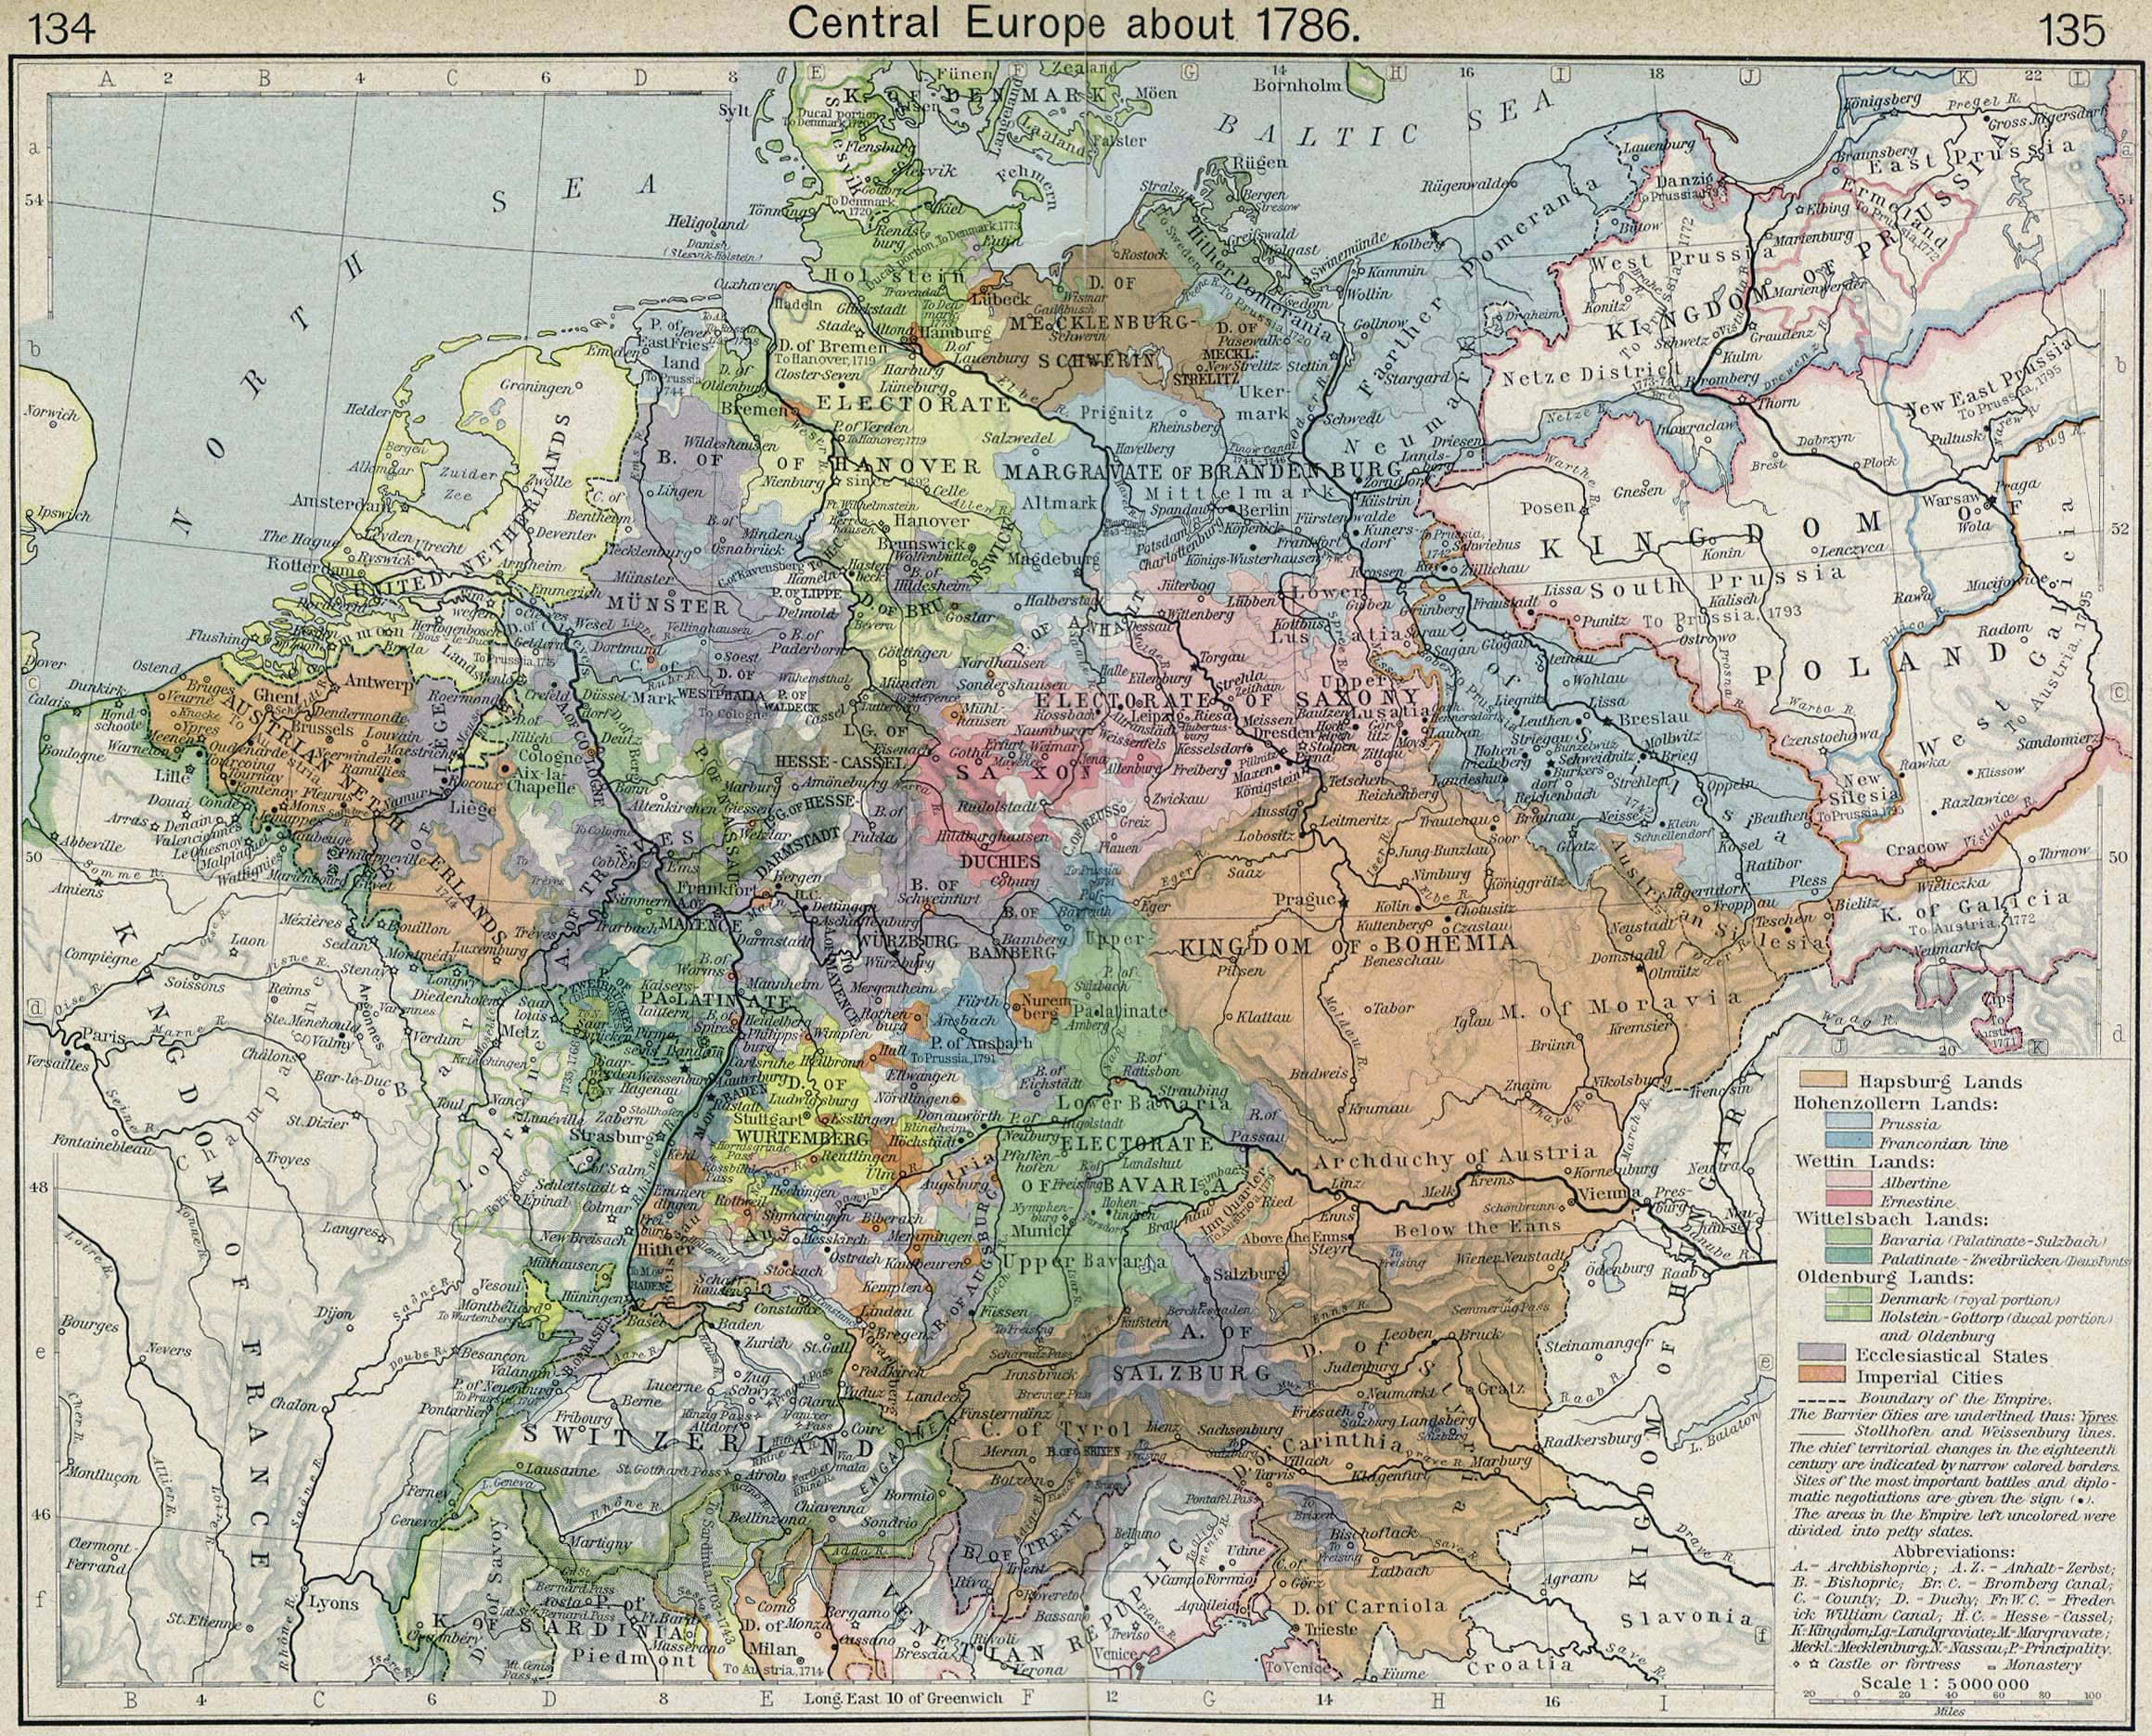 French revolution maps 1786 central europeg gumiabroncs Gallery